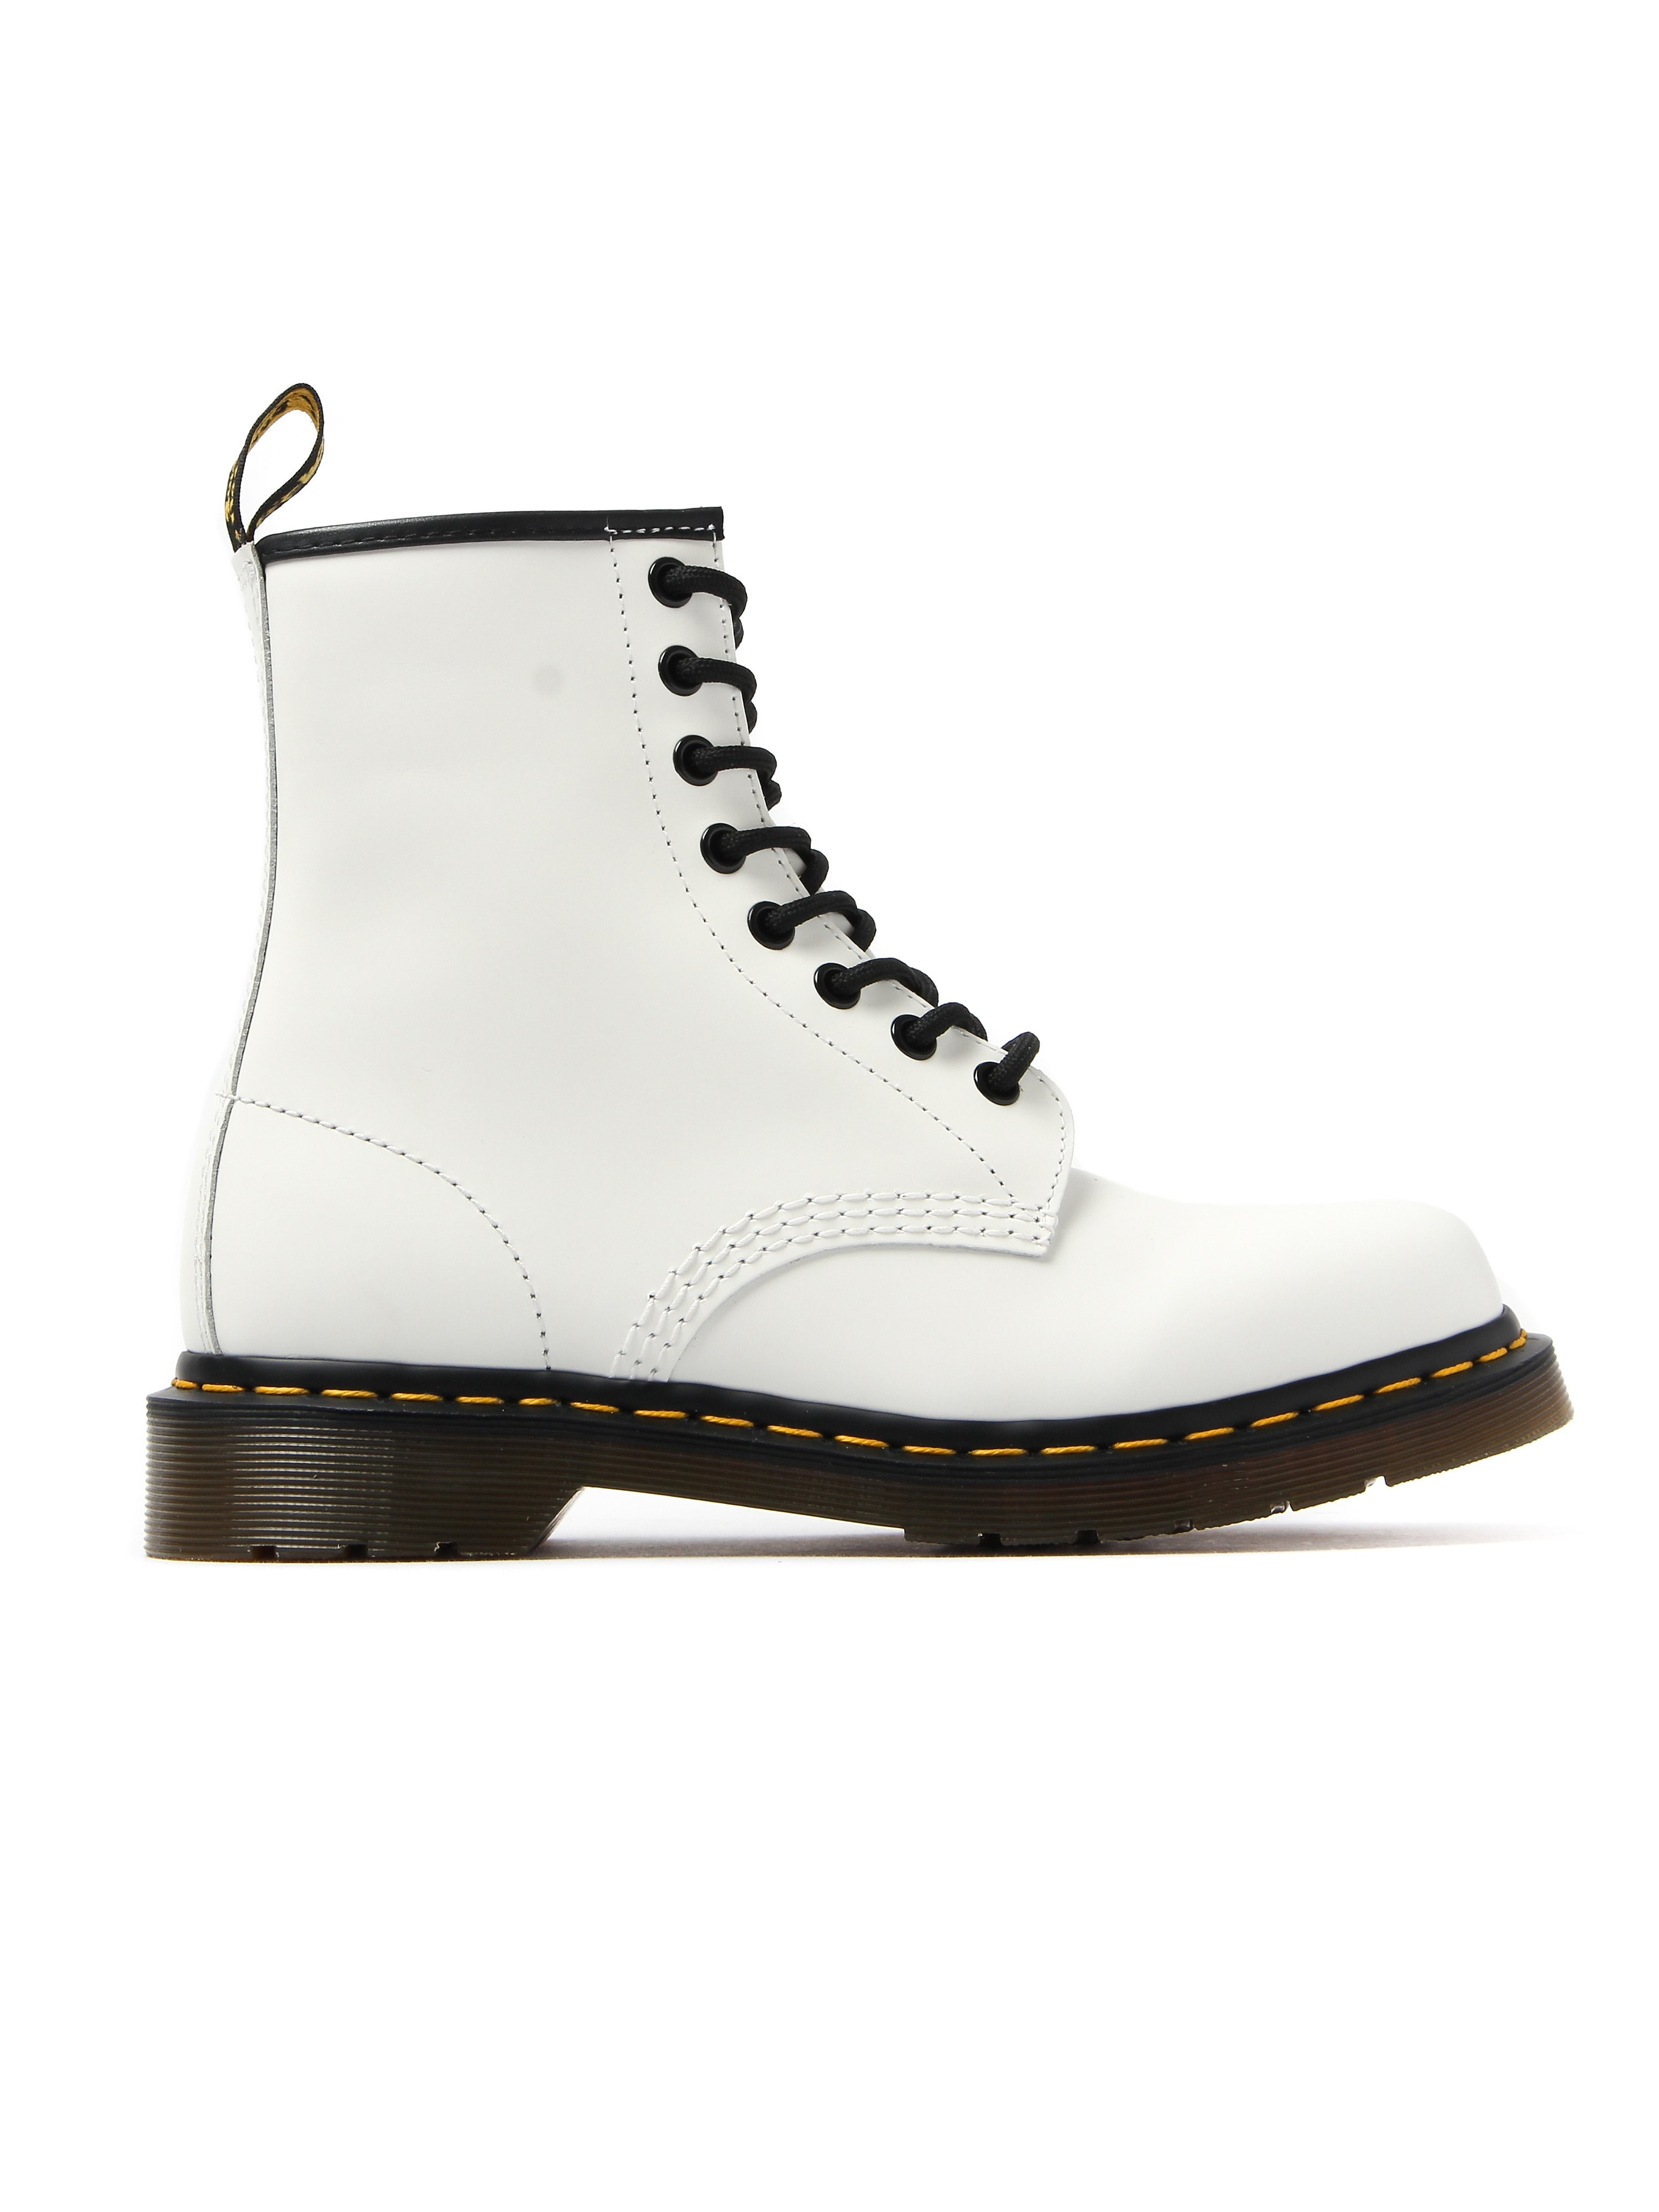 Dr Martens Womens 8 Eyelet 1460 Smooth Leather Boot - White